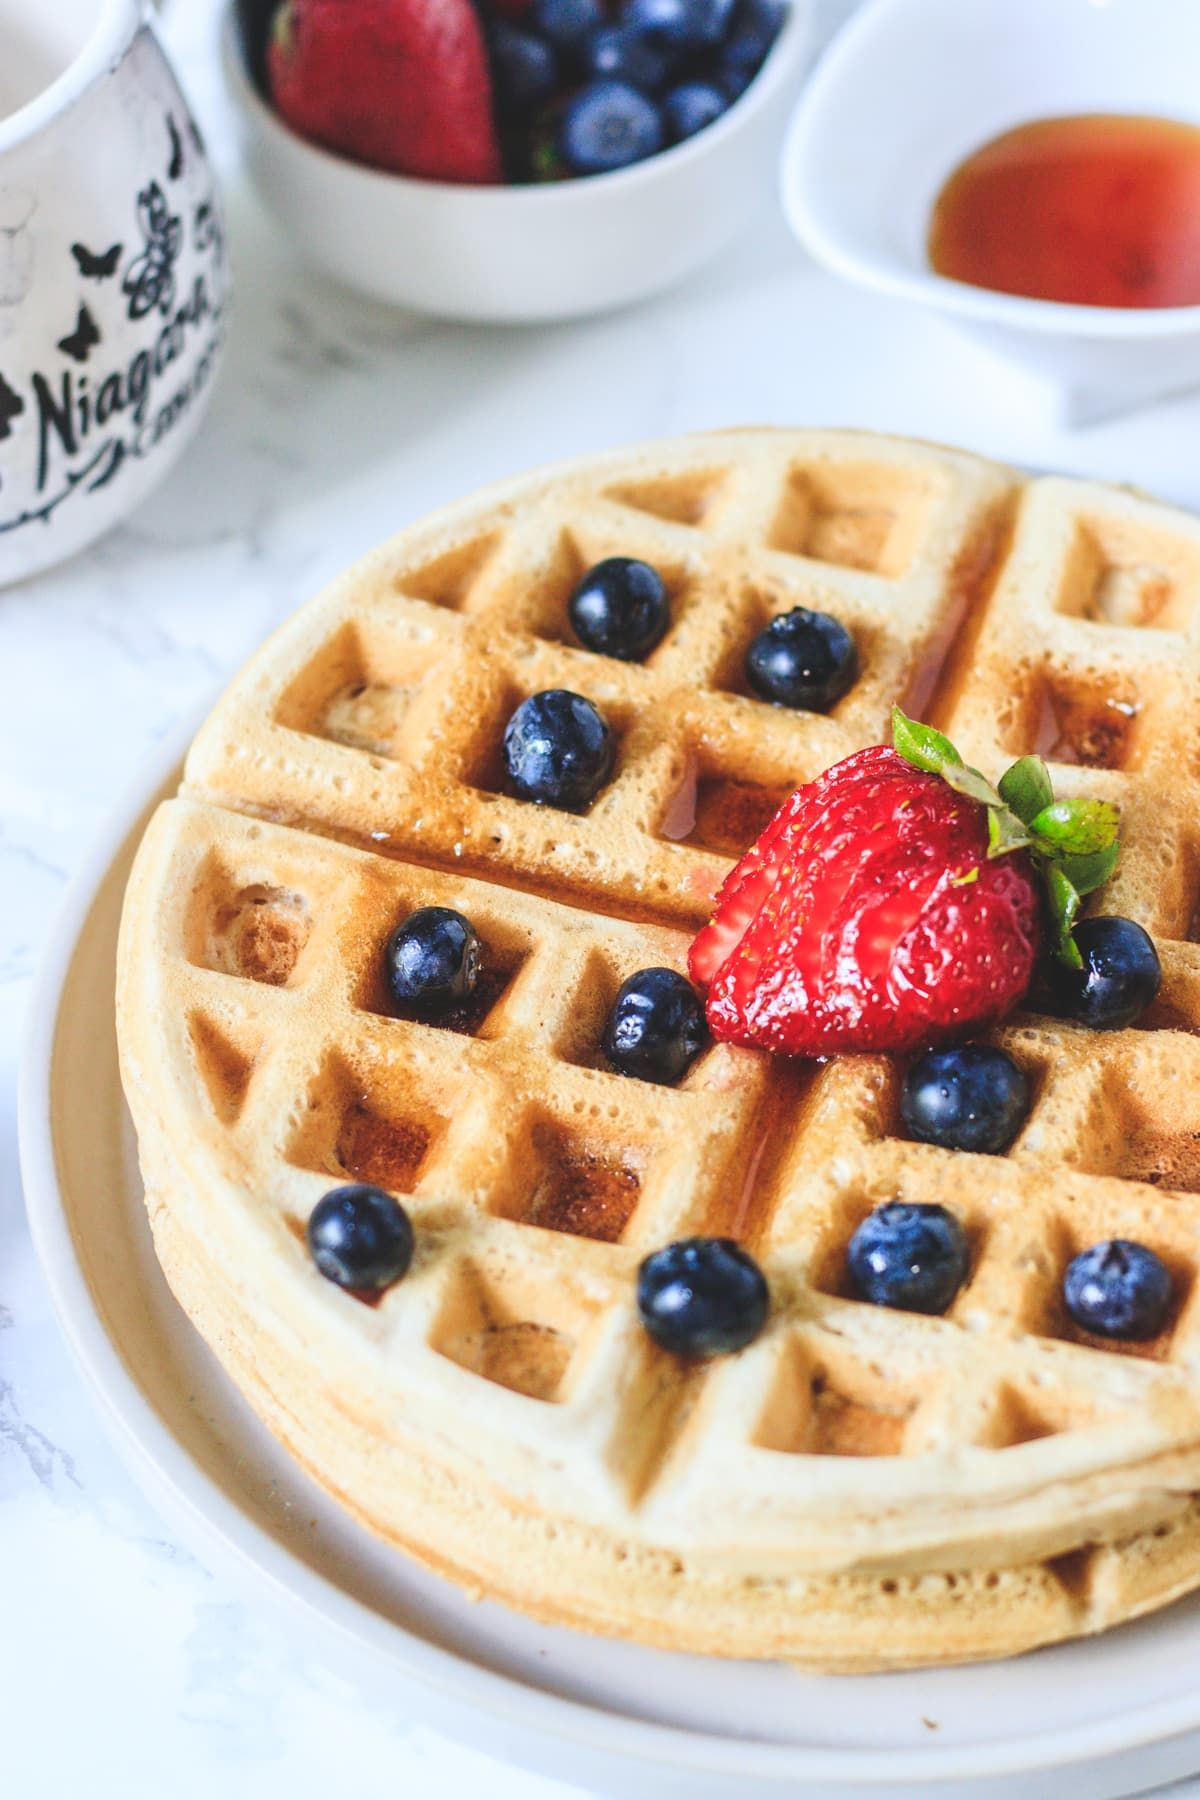 Eggless Waffles Vegan Spice Up The Curry Recipe In 2020 Vegan Dessert Recipes Waffle Recipes Waffles